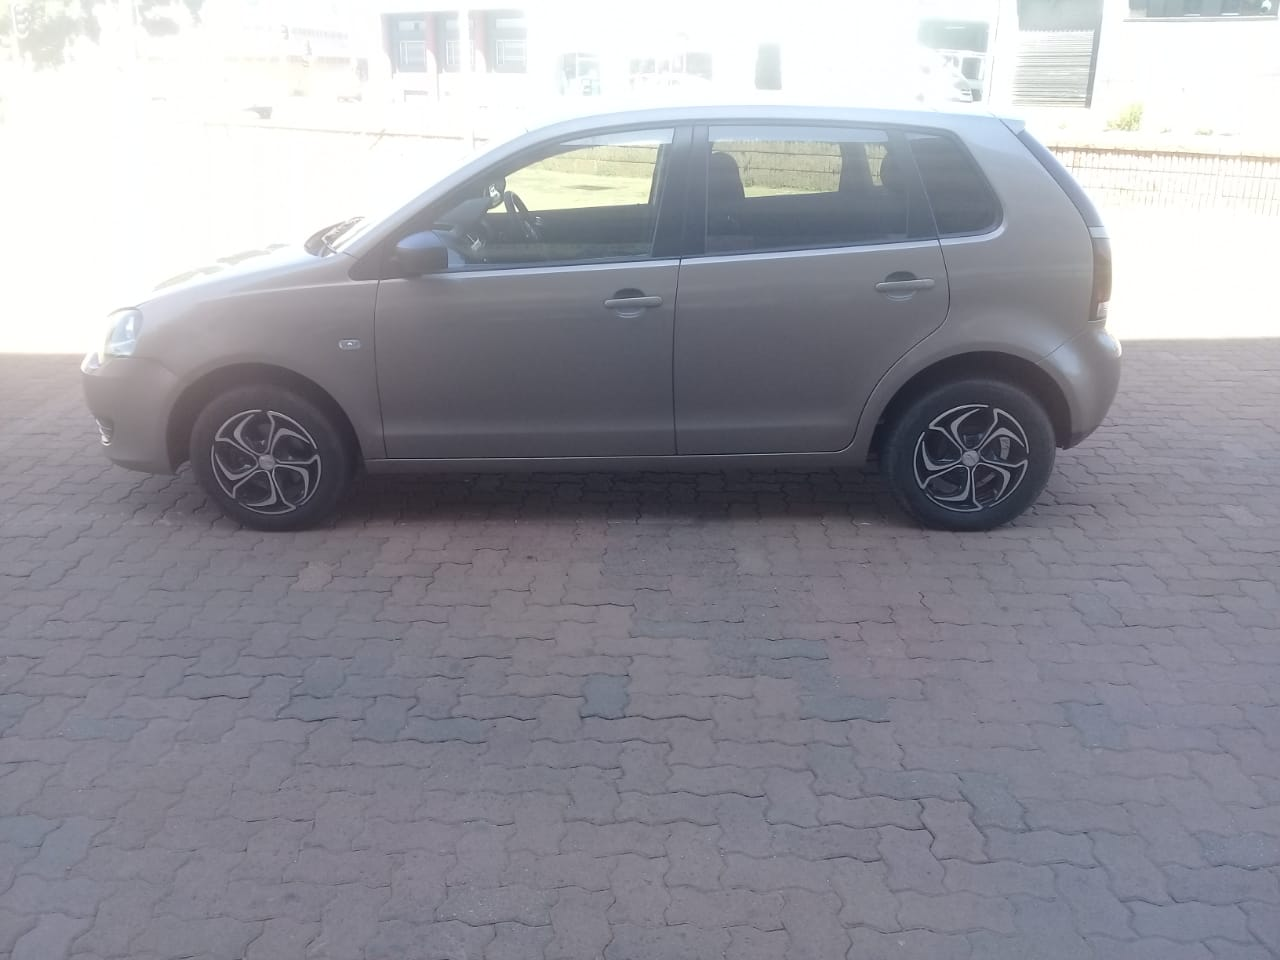 2015 VW Polo Vivo hatch 5-door POLO VIVO 1.4 COMFORTLINE (5DR)